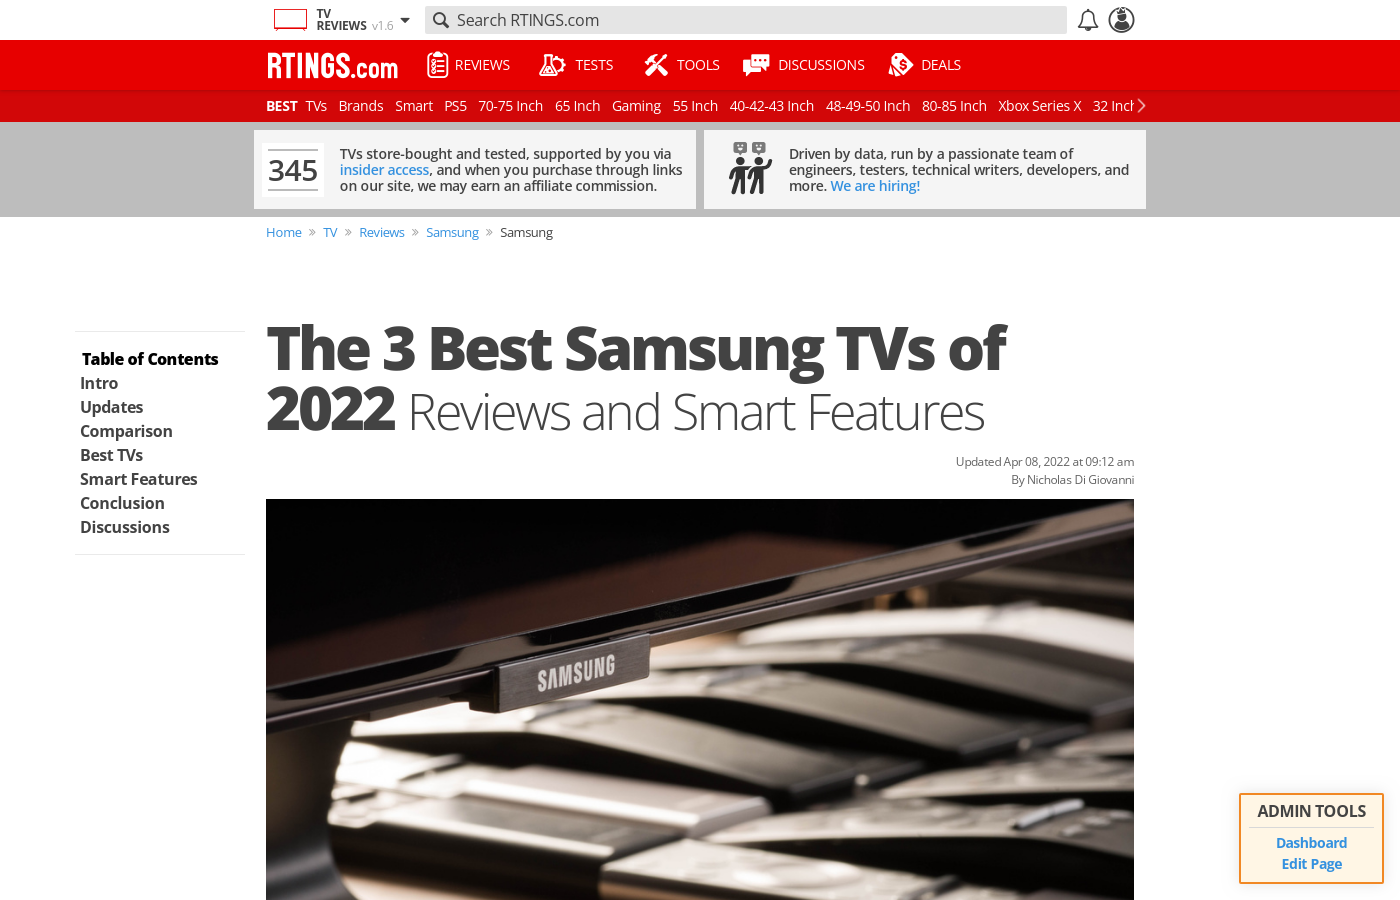 The Best Samsung TVs of 2019: Reviews and Smart Features - RTINGS com